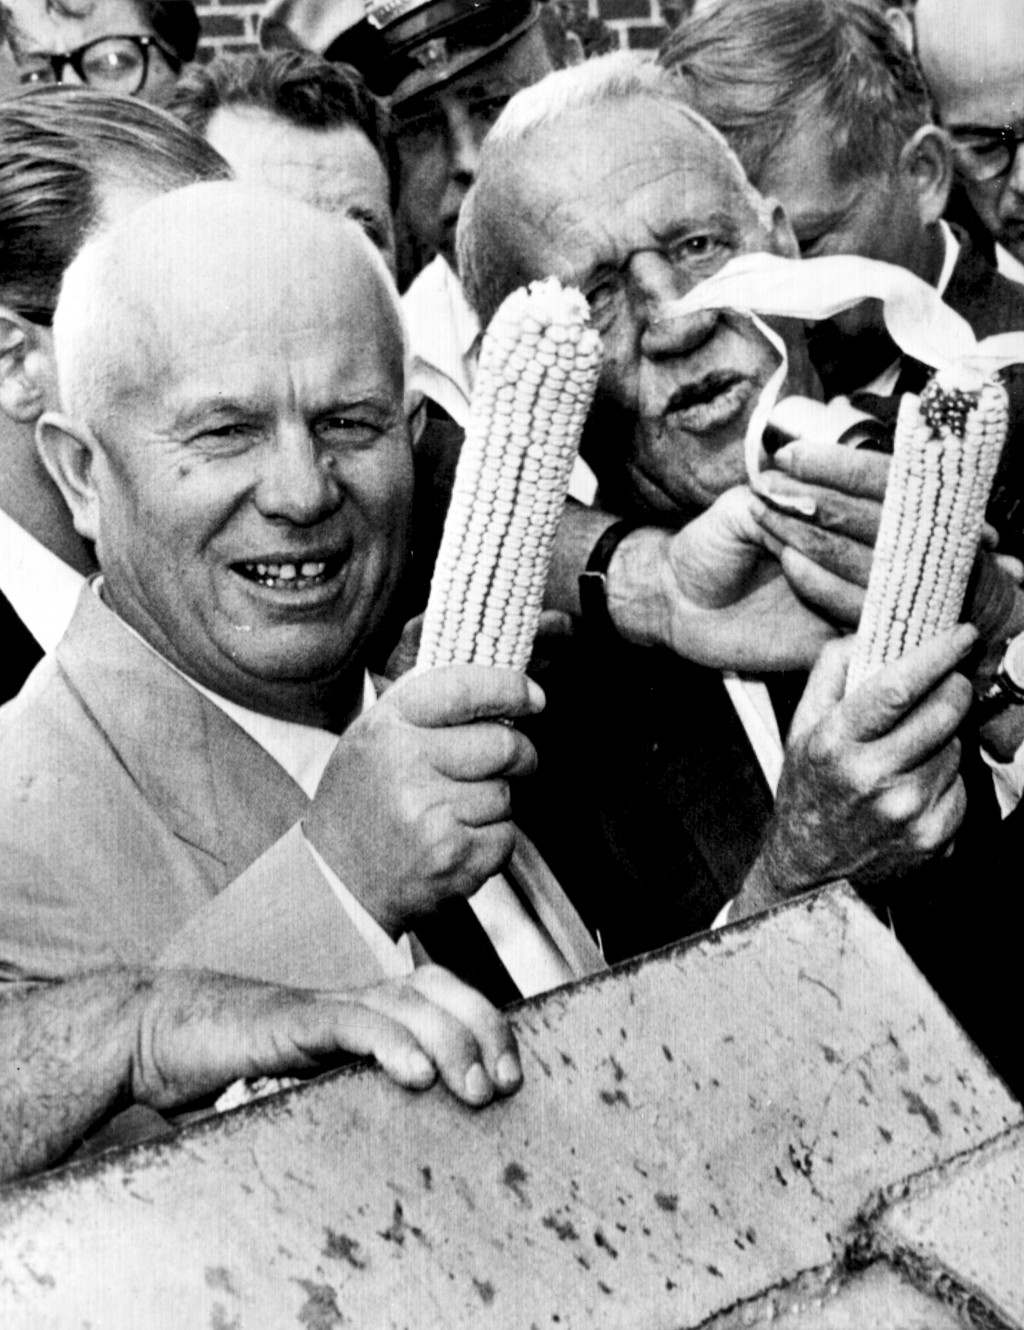 FILE - In this Sept. 23, 1959, file photo, Soviet Premier Nikita Khrushchev and Roswell Garst pose with corn cobs during an inspection tour of The Gar